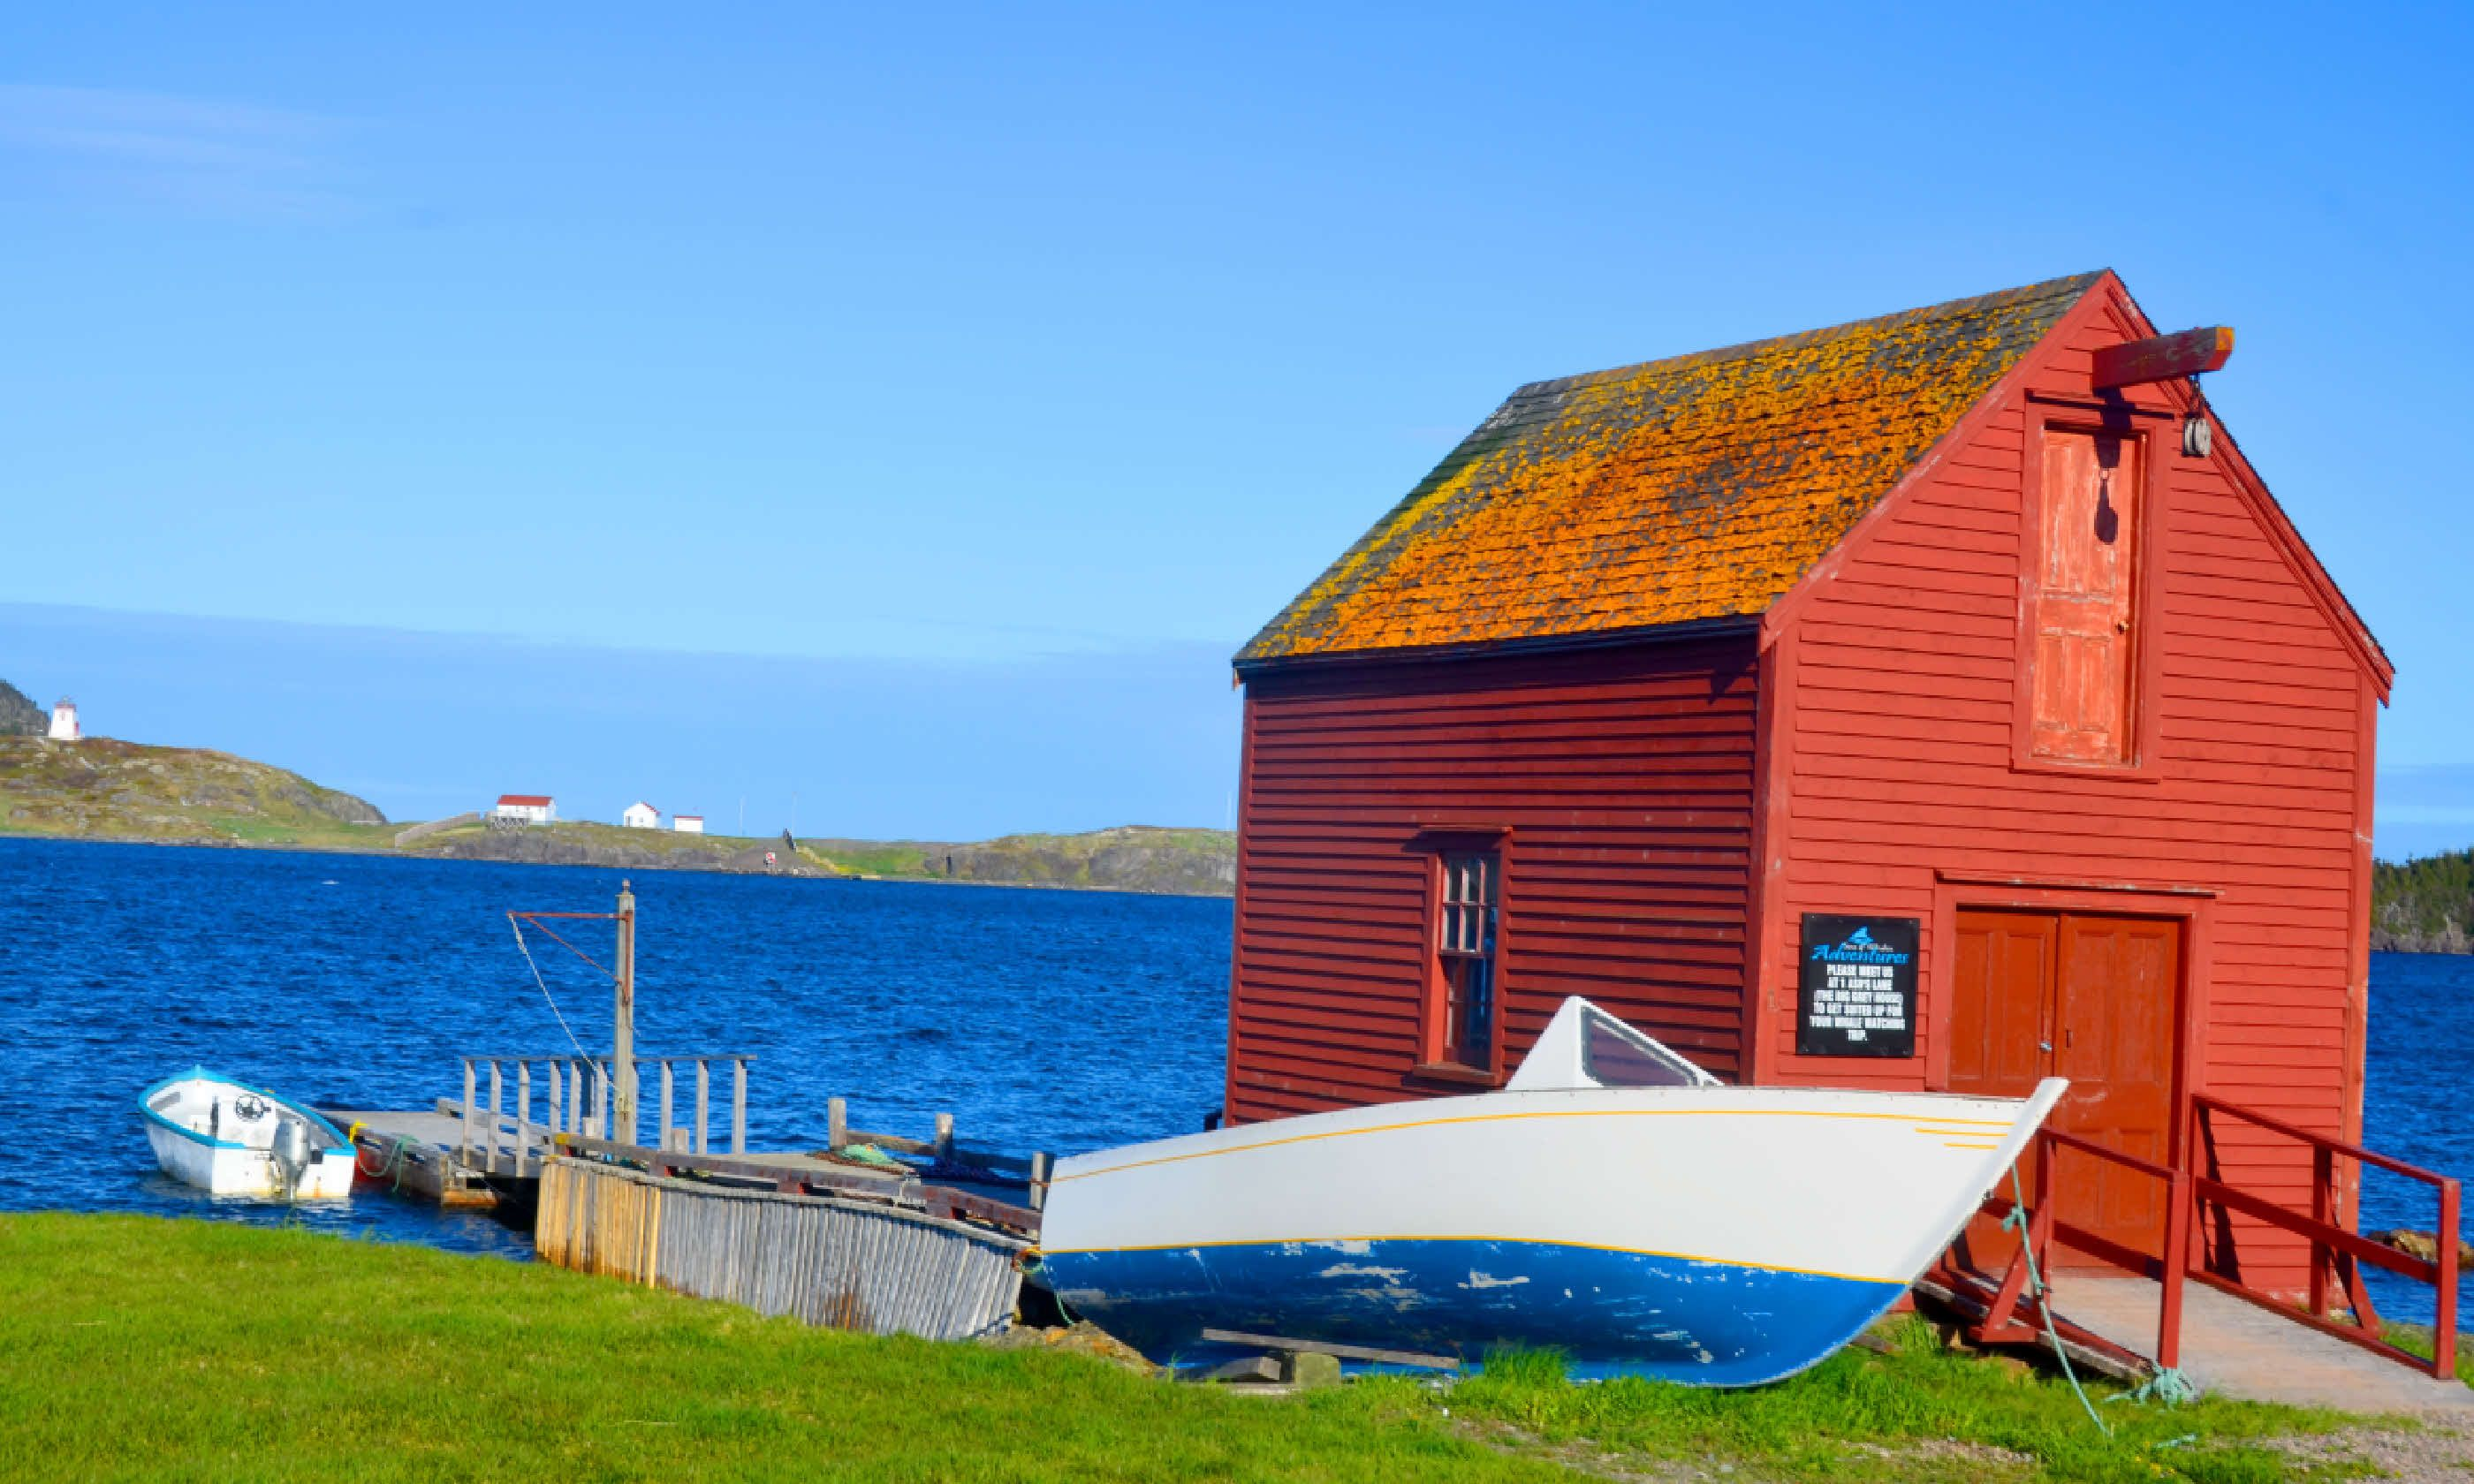 Fisherman house in Newfoundland (Shutterstock)